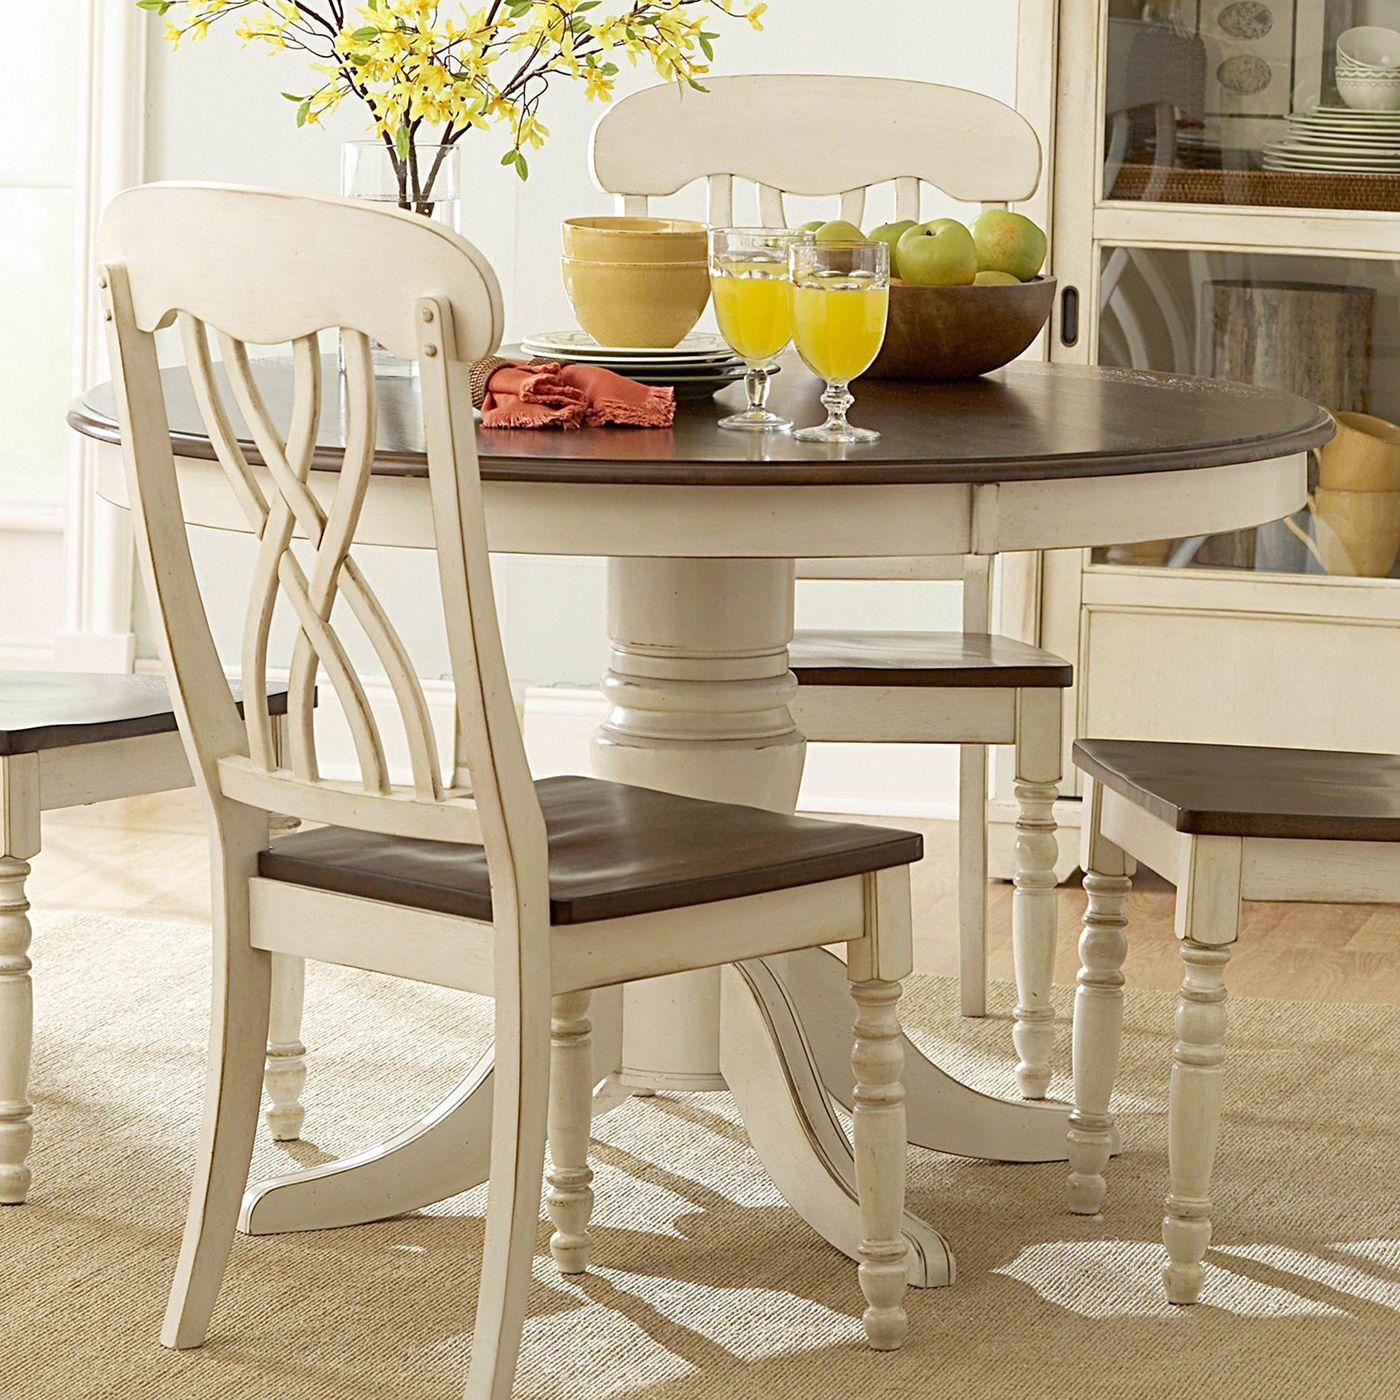 Homelegance 1393 Ohana Round Dining Table At Atg Stores Round